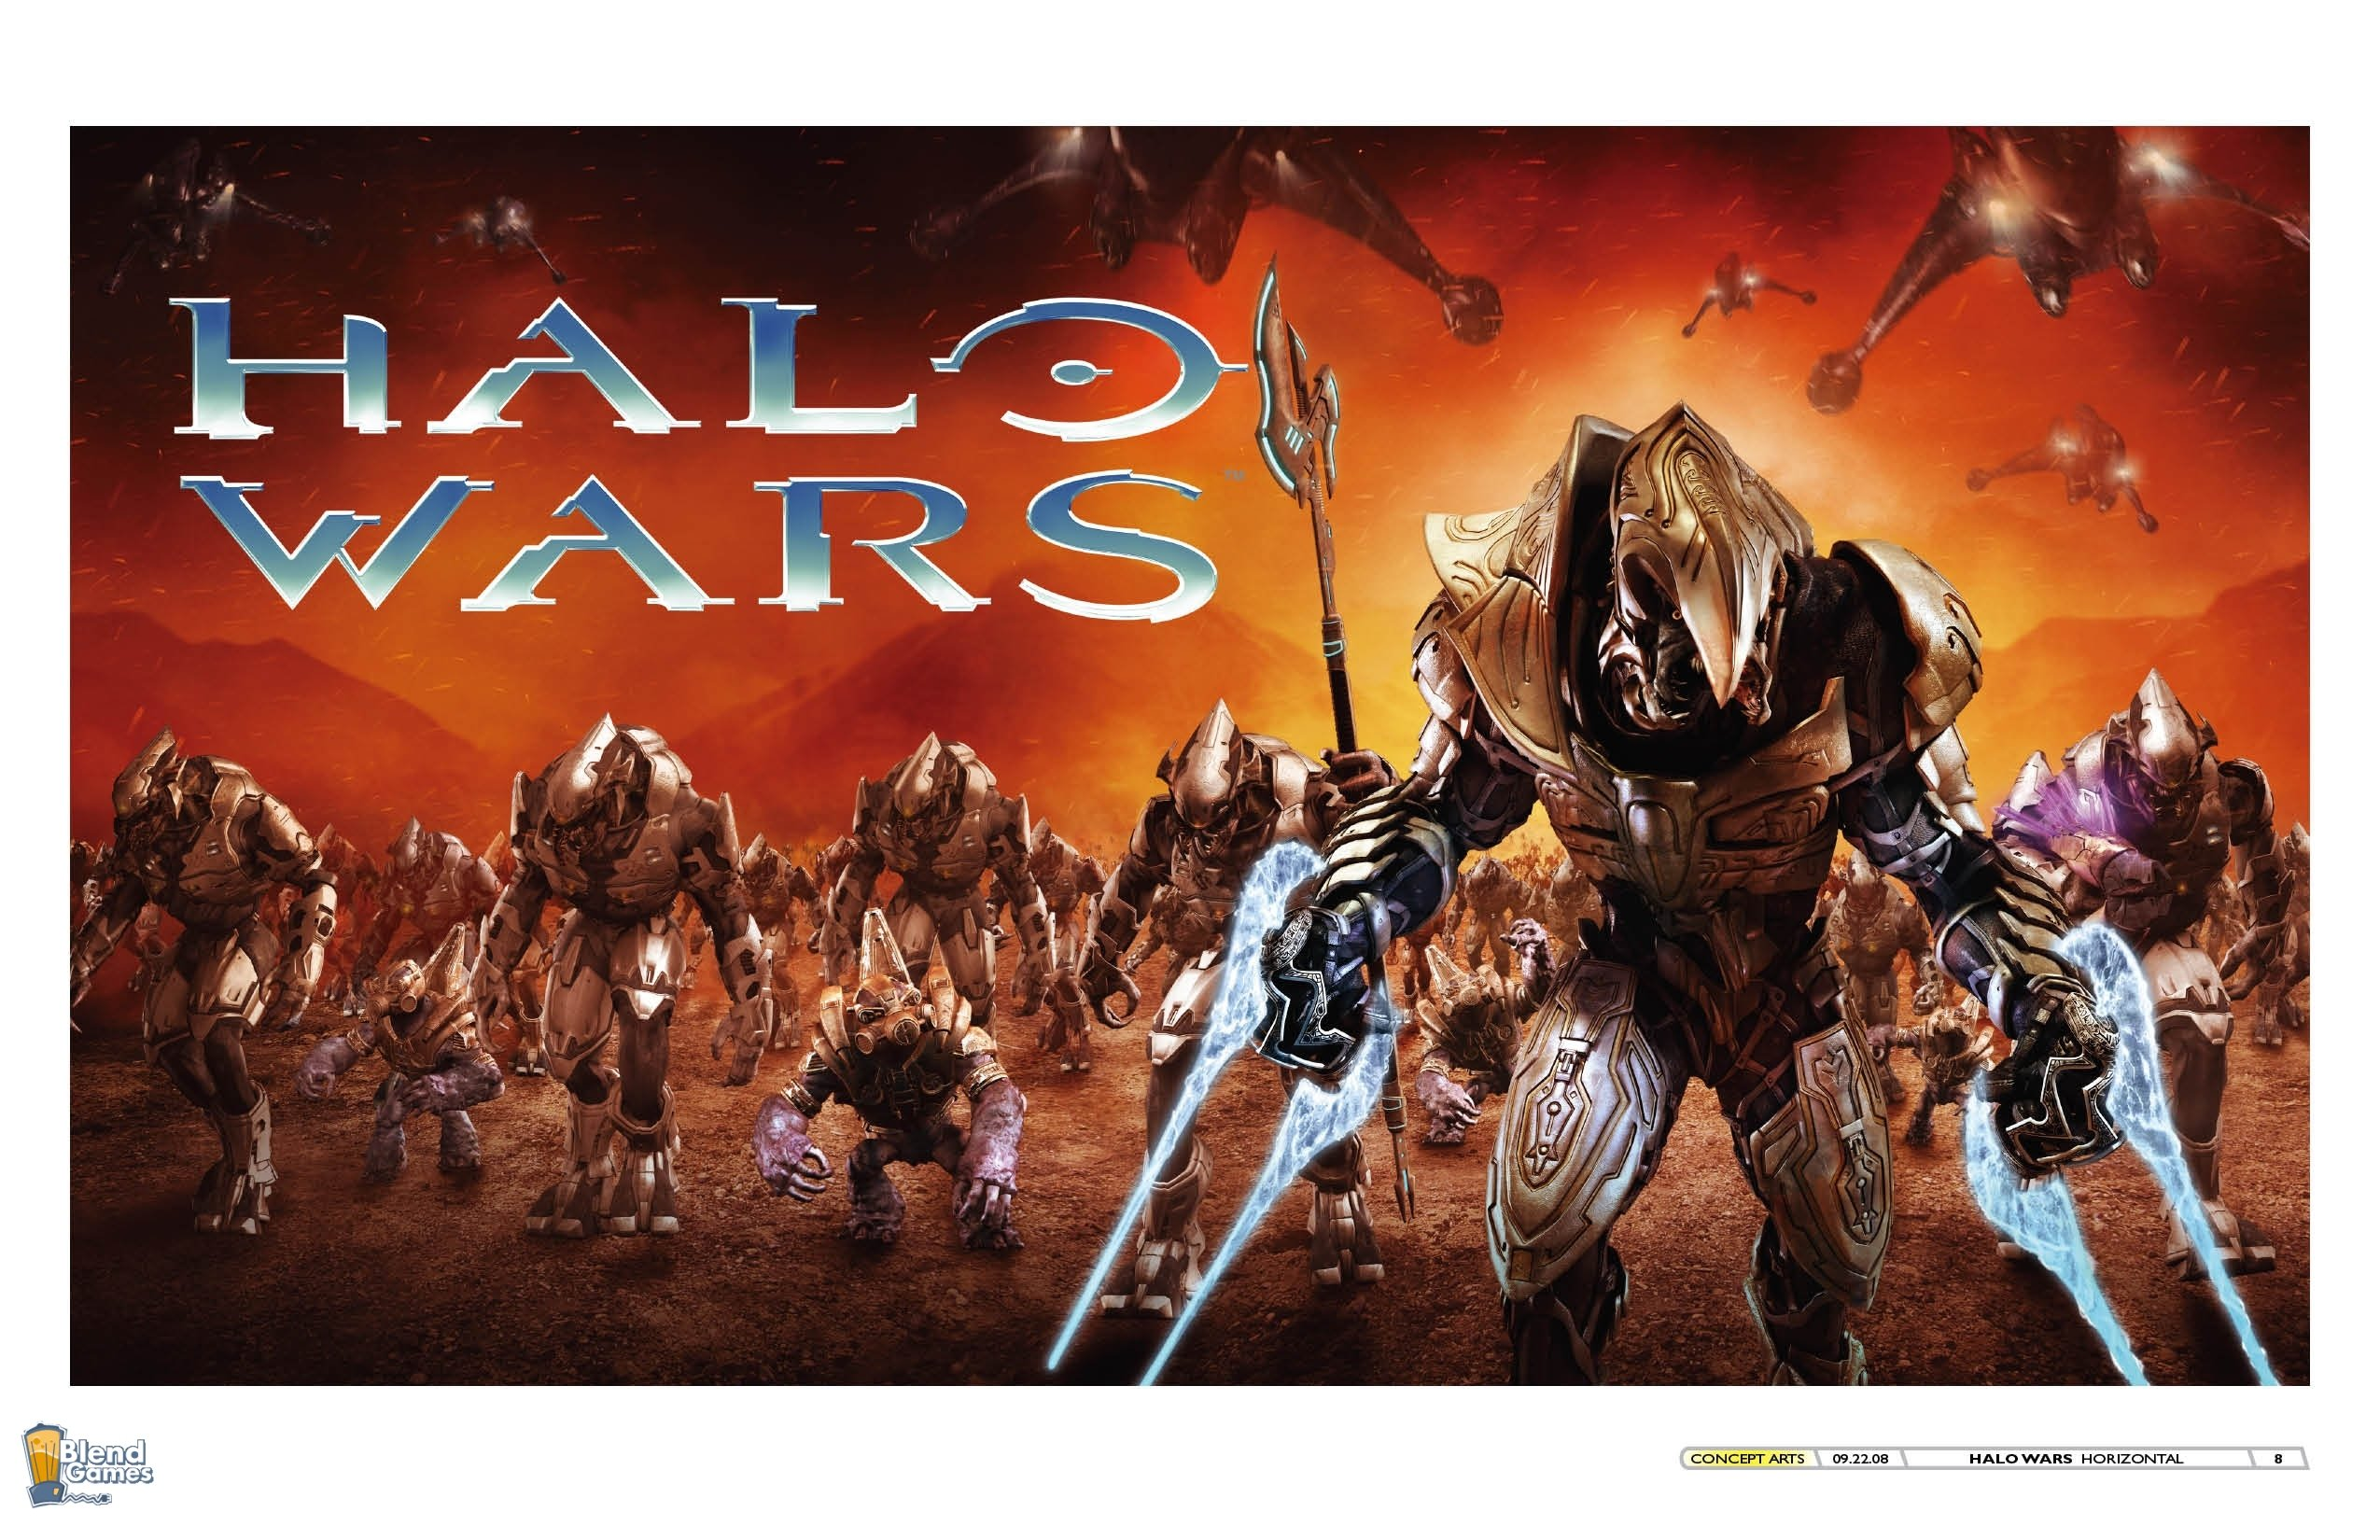 Halo Wars New Artwork And Wallpapers #4575